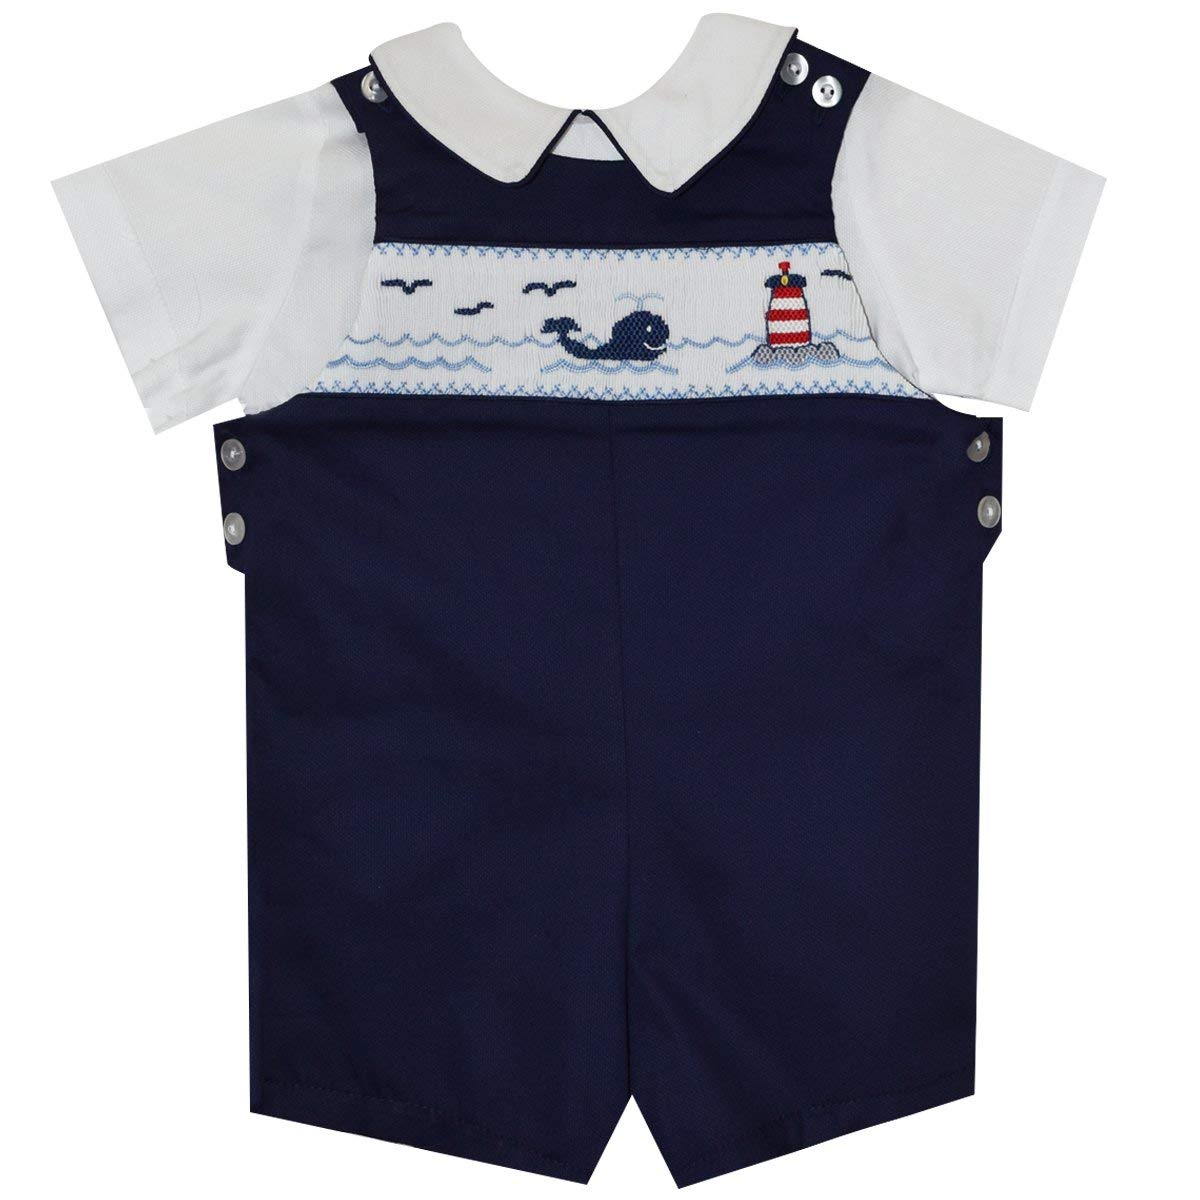 BETTI TERRELL Whales and Lt House Smocked Boys Shortall and Shirt SS Black